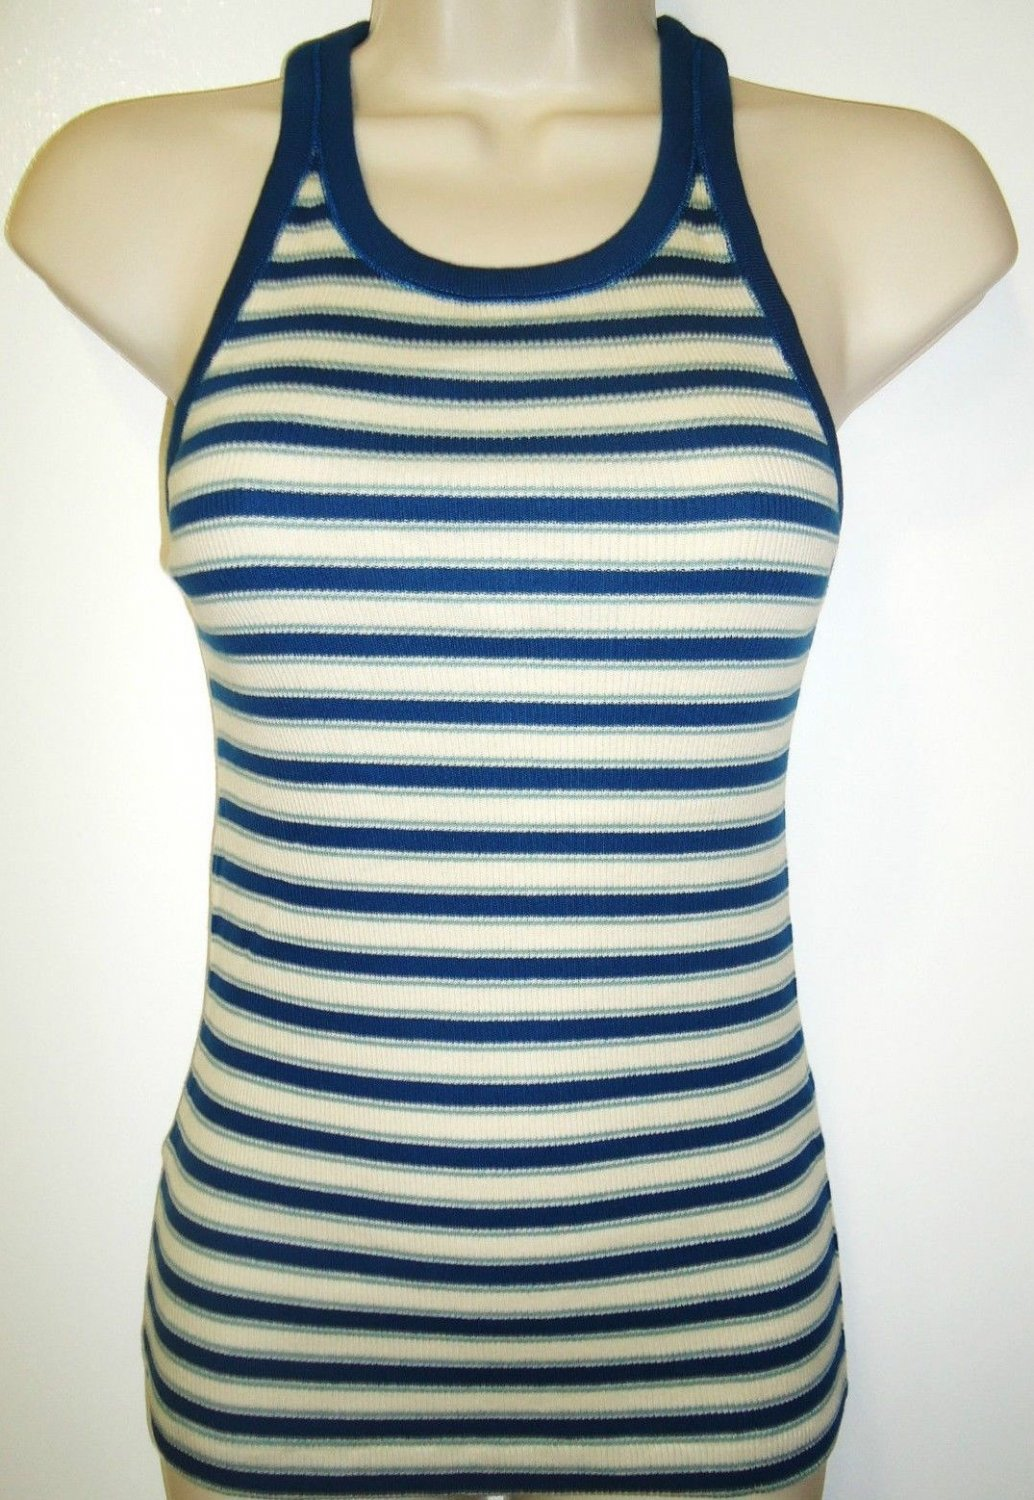 RALPH LAUREN - POLO - RL - BLUE LABEL - BLUE - WHITE - TANK - TOP - NEW - MEDIUM